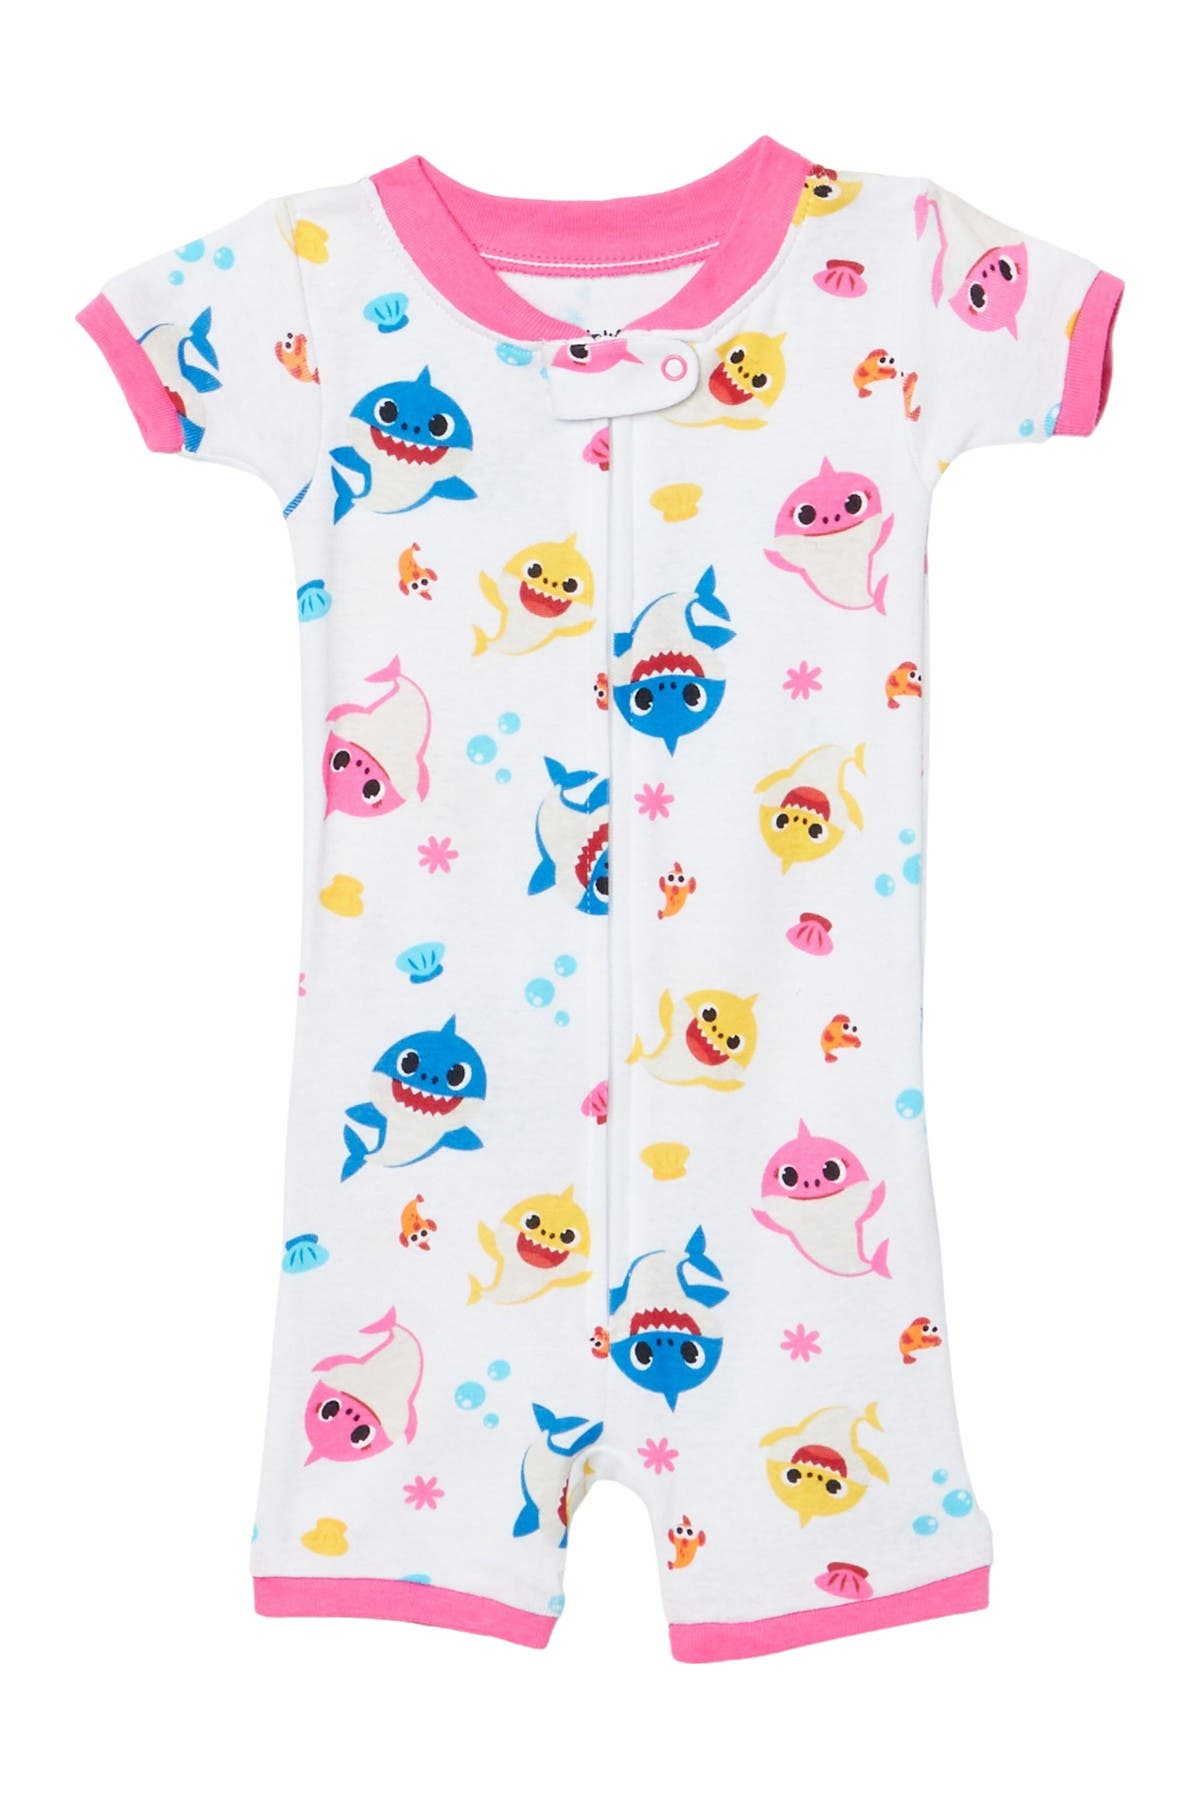 Image of AME Baby Shark Cotton Romper